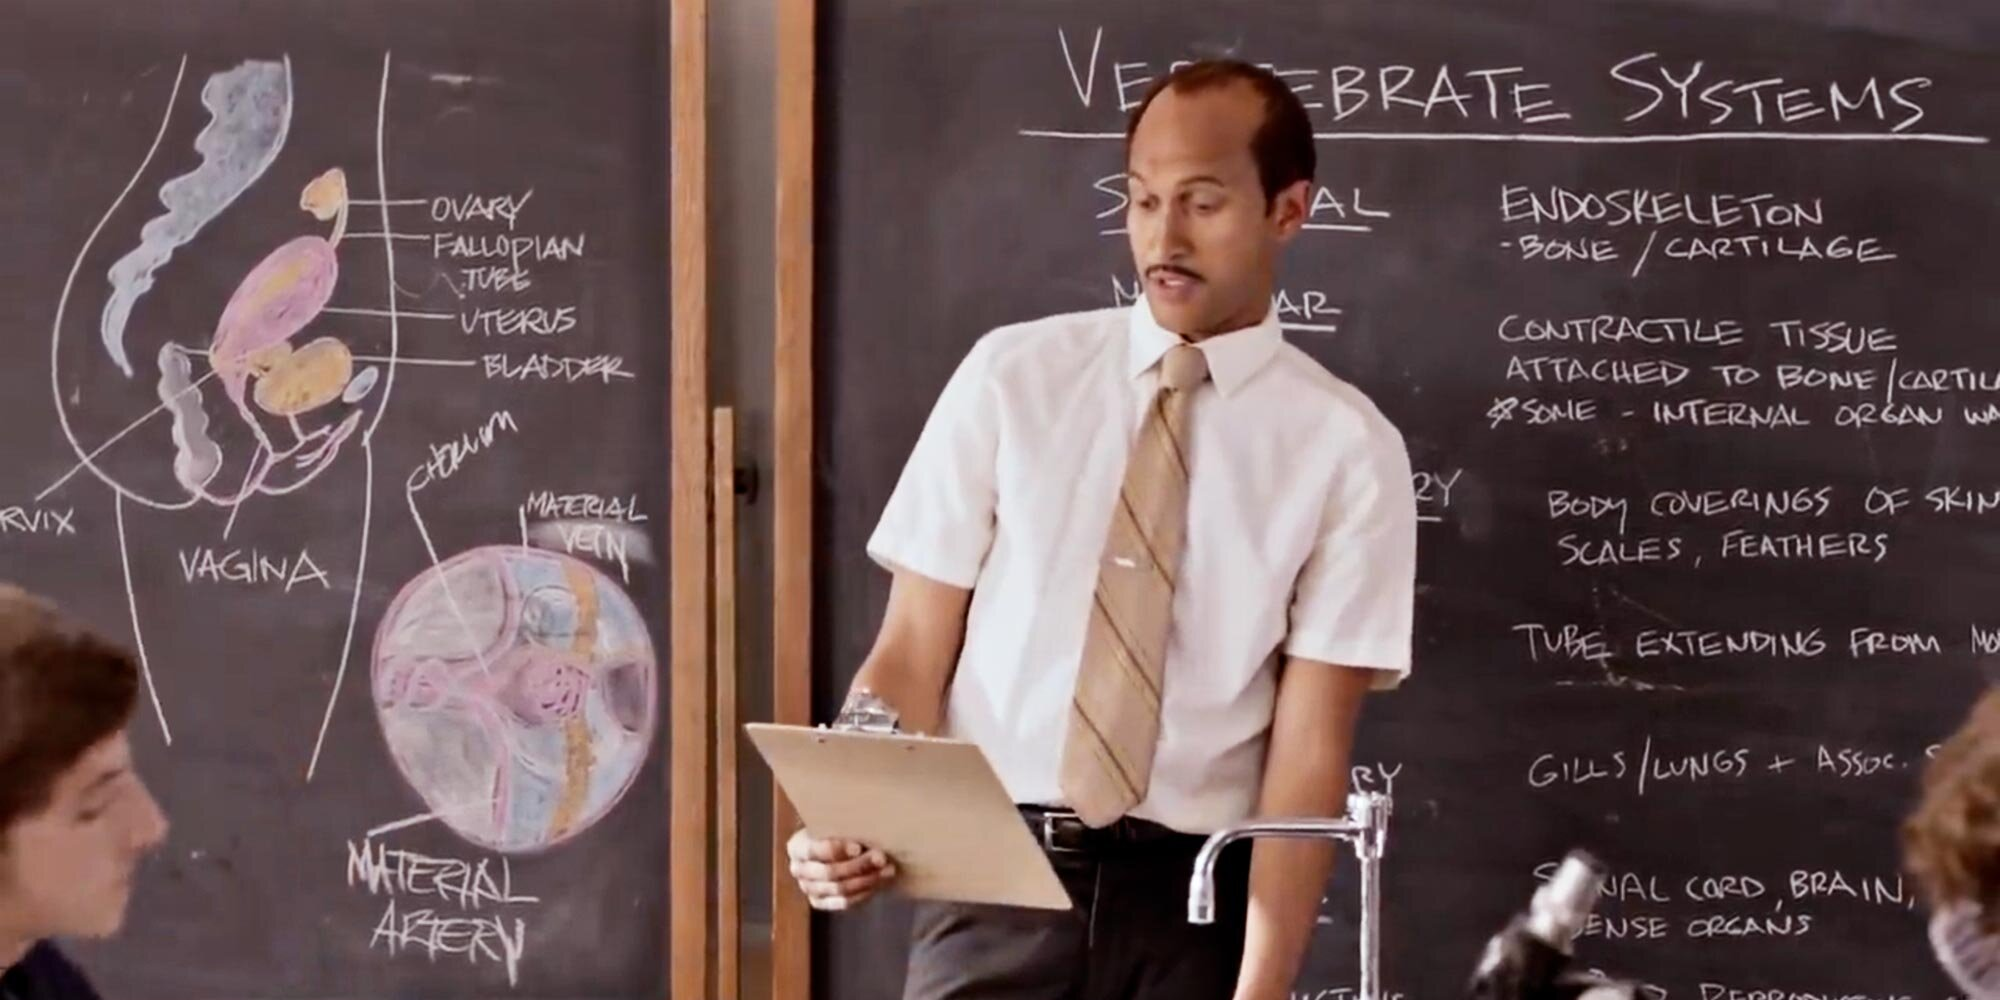 'Ya done messed up, A-A-Ron': An oral history of the 'Key & Peele' classic 'Substitute Teacher'